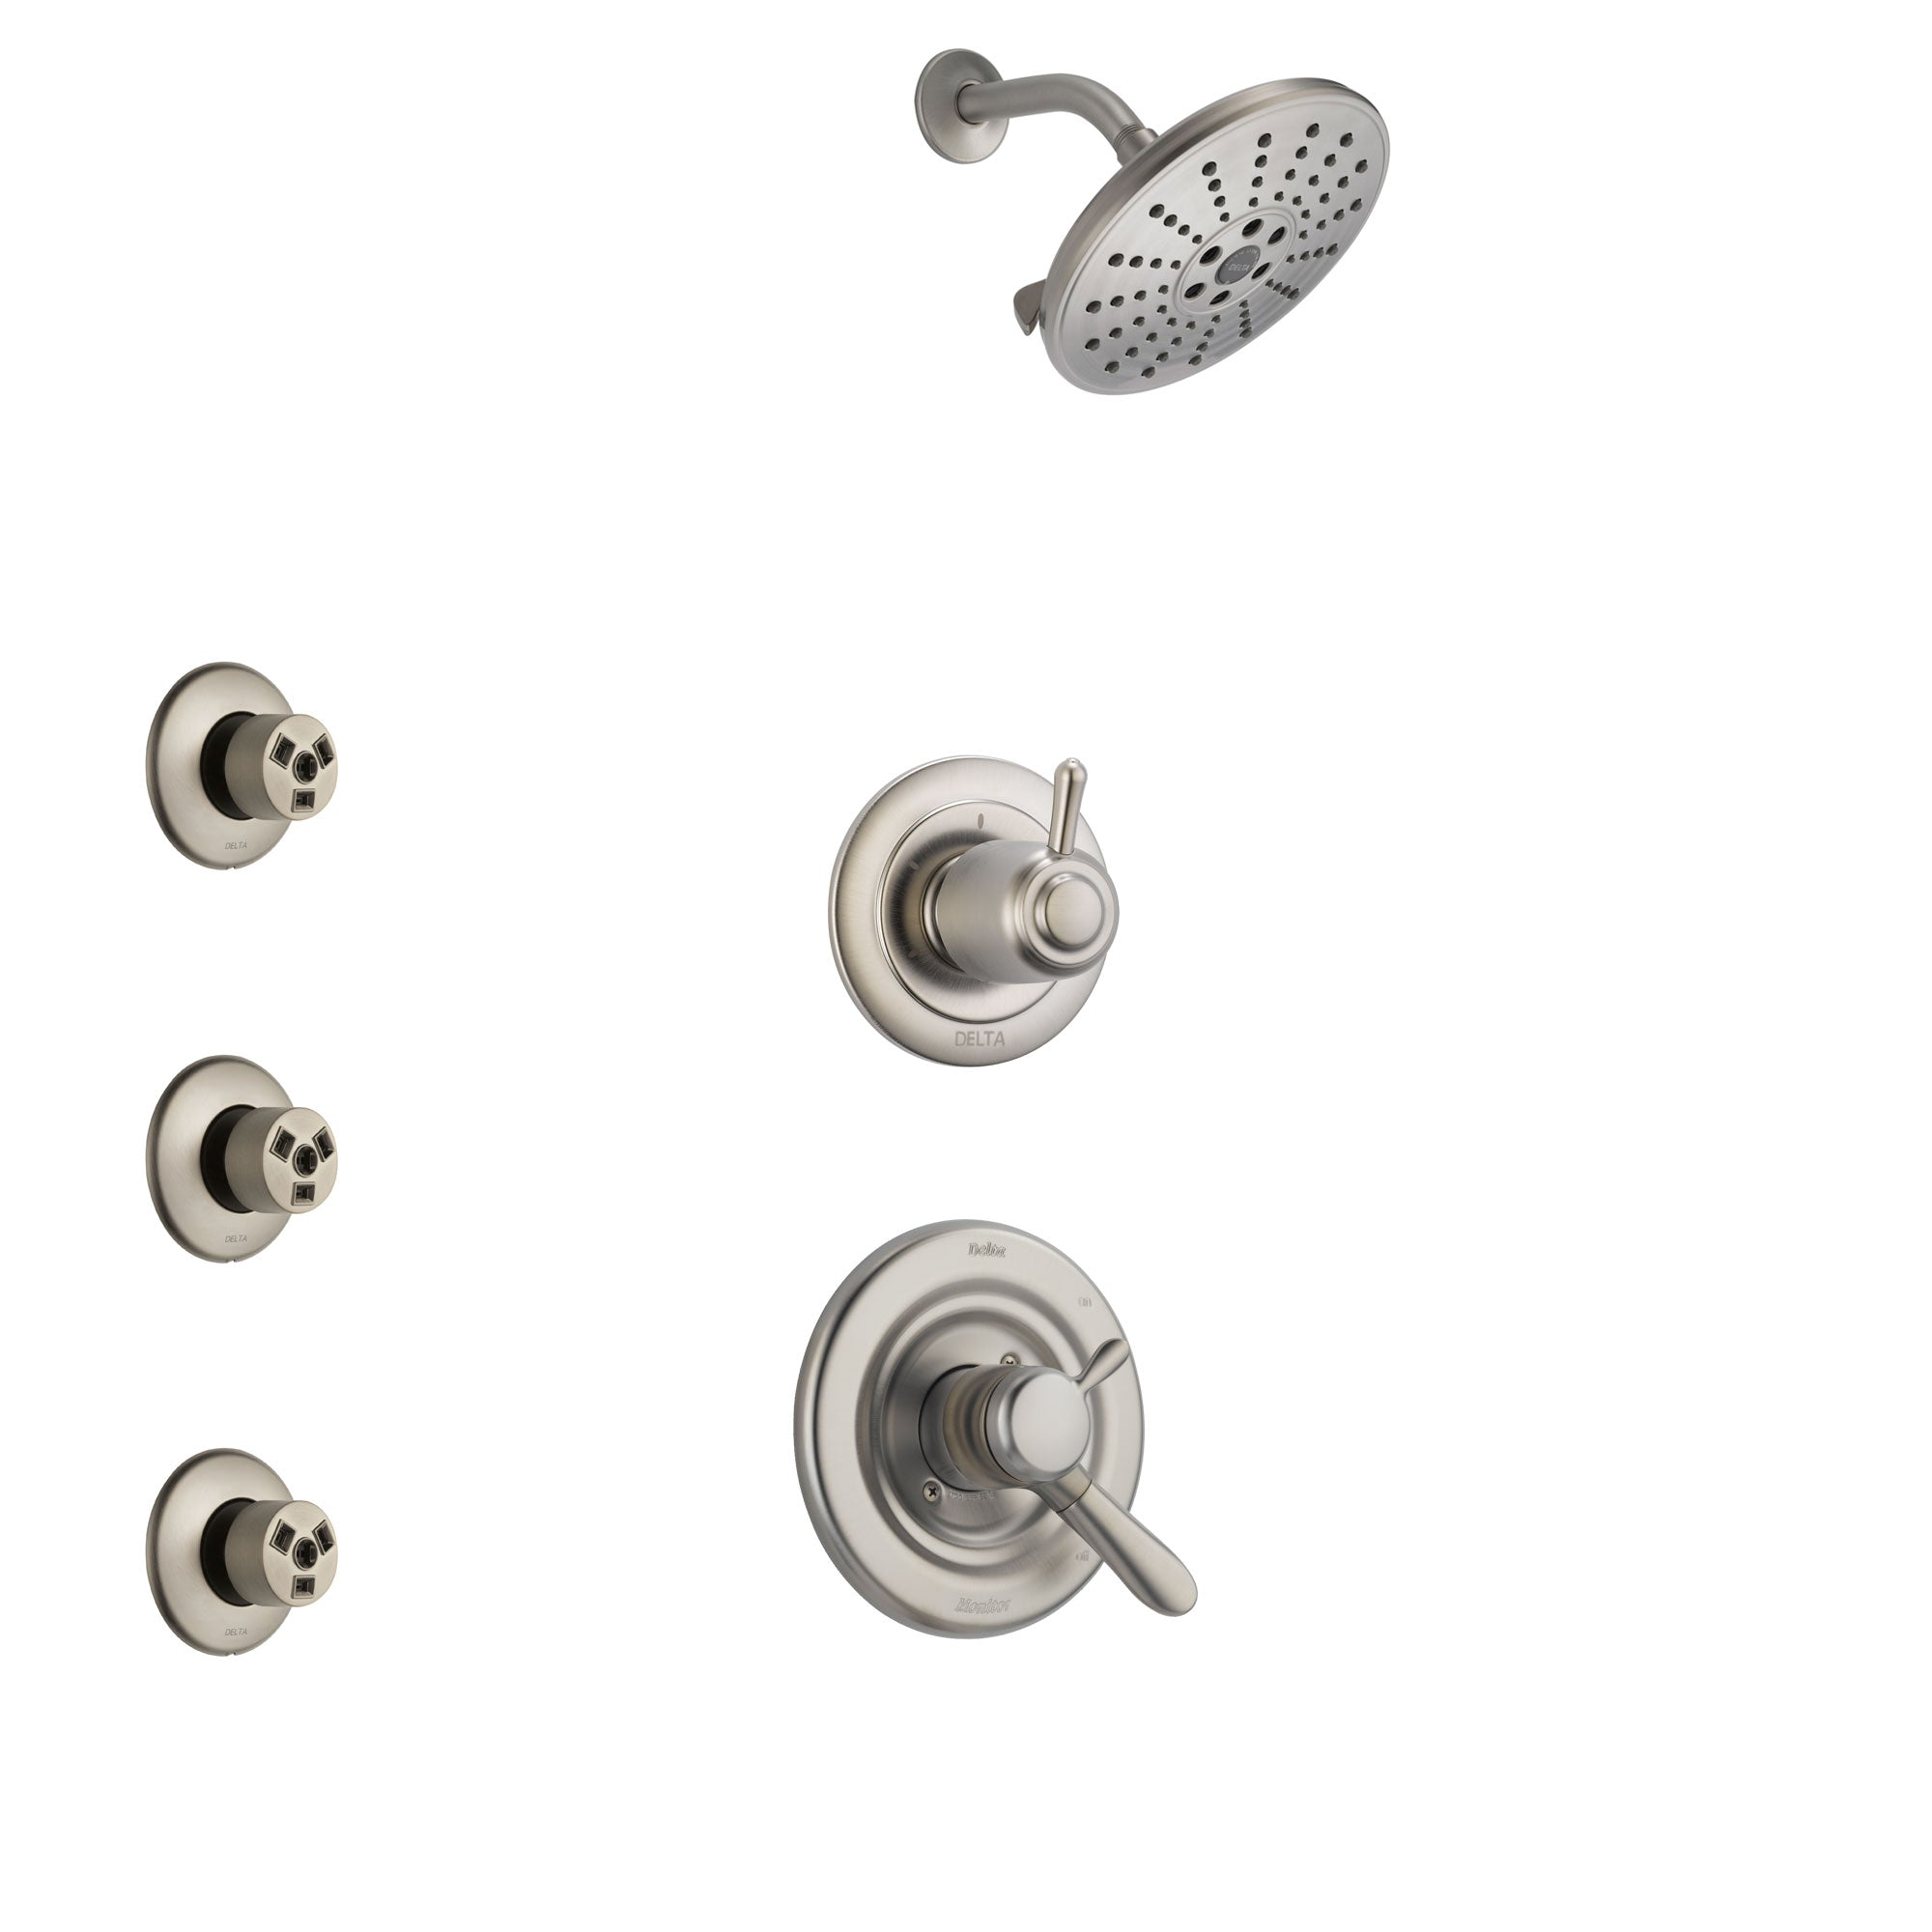 Delta Lahara Stainless Steel Finish Shower System with Dual Control Handle, 3-Setting Diverter, Showerhead, and 3 Body Sprays SS1738SS3